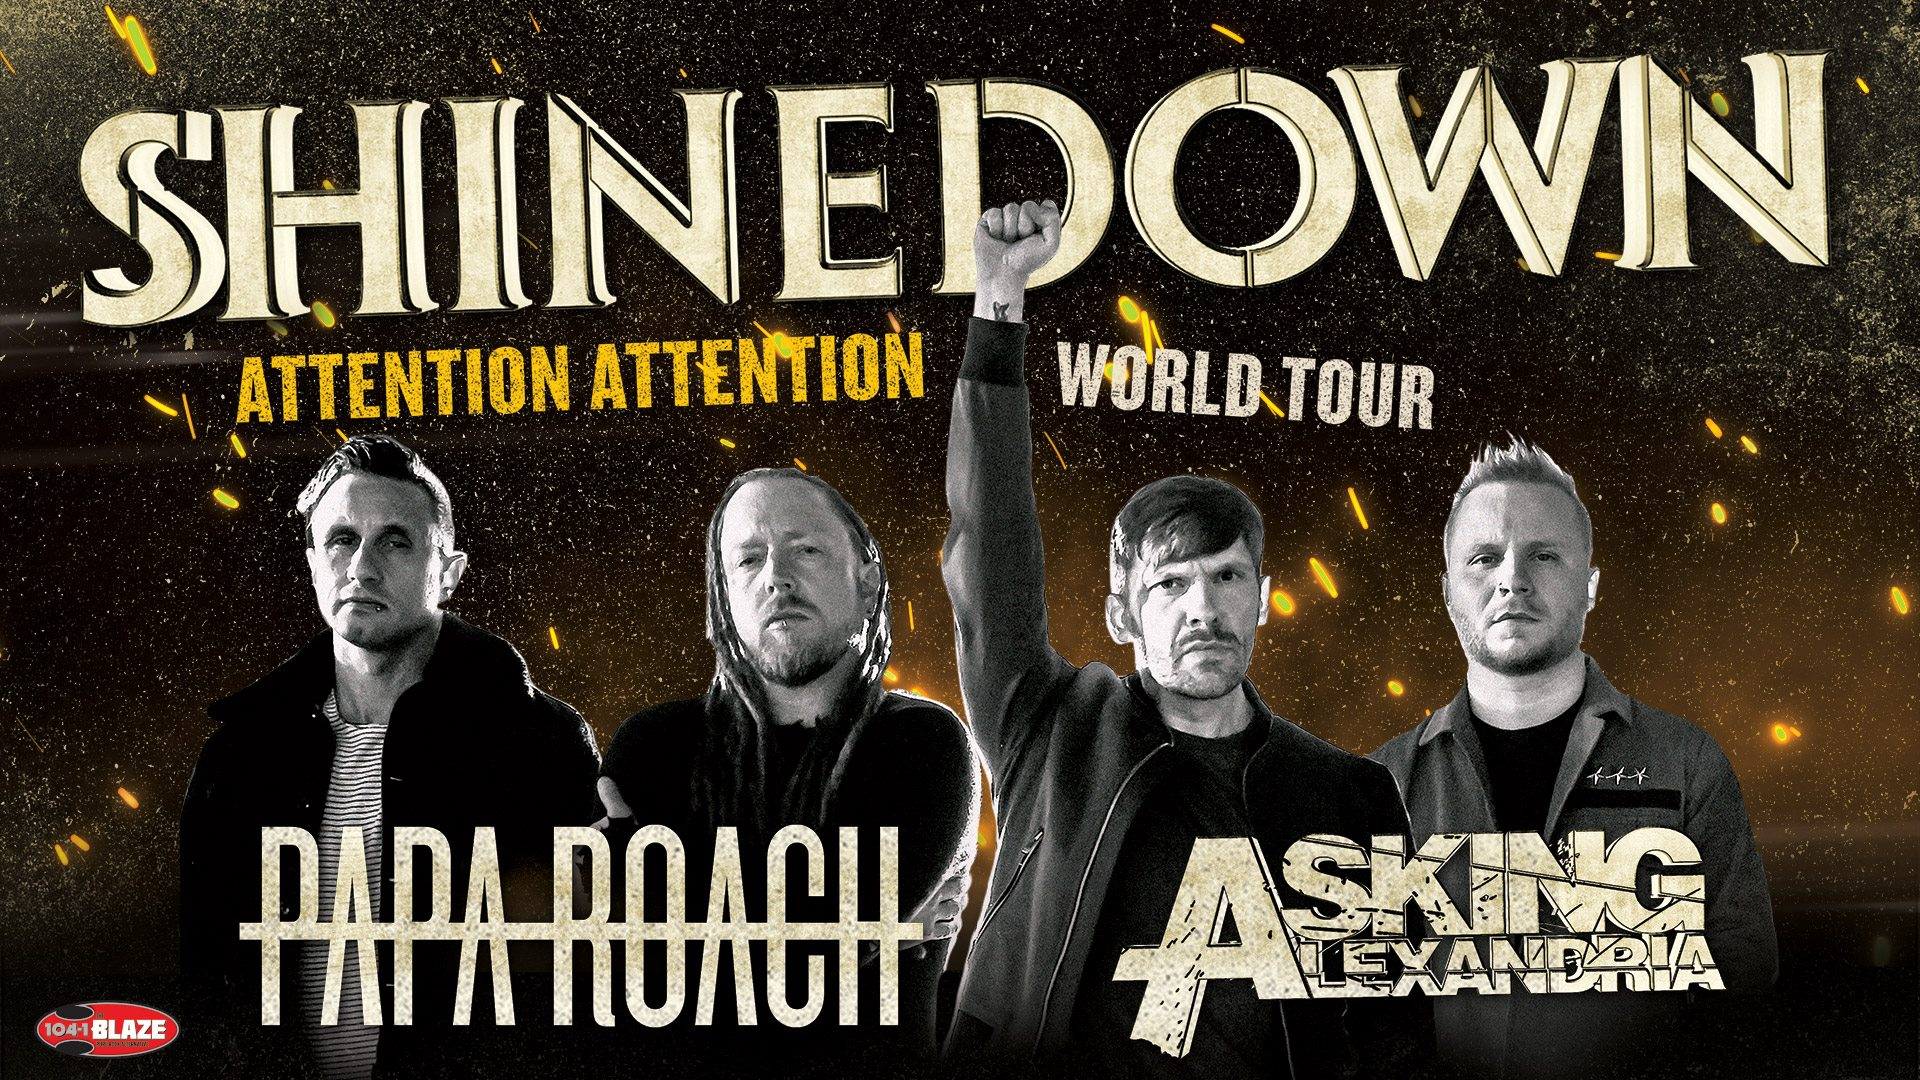 Shinedown with Papa Roach and Asking Alexandria, Mar. 15